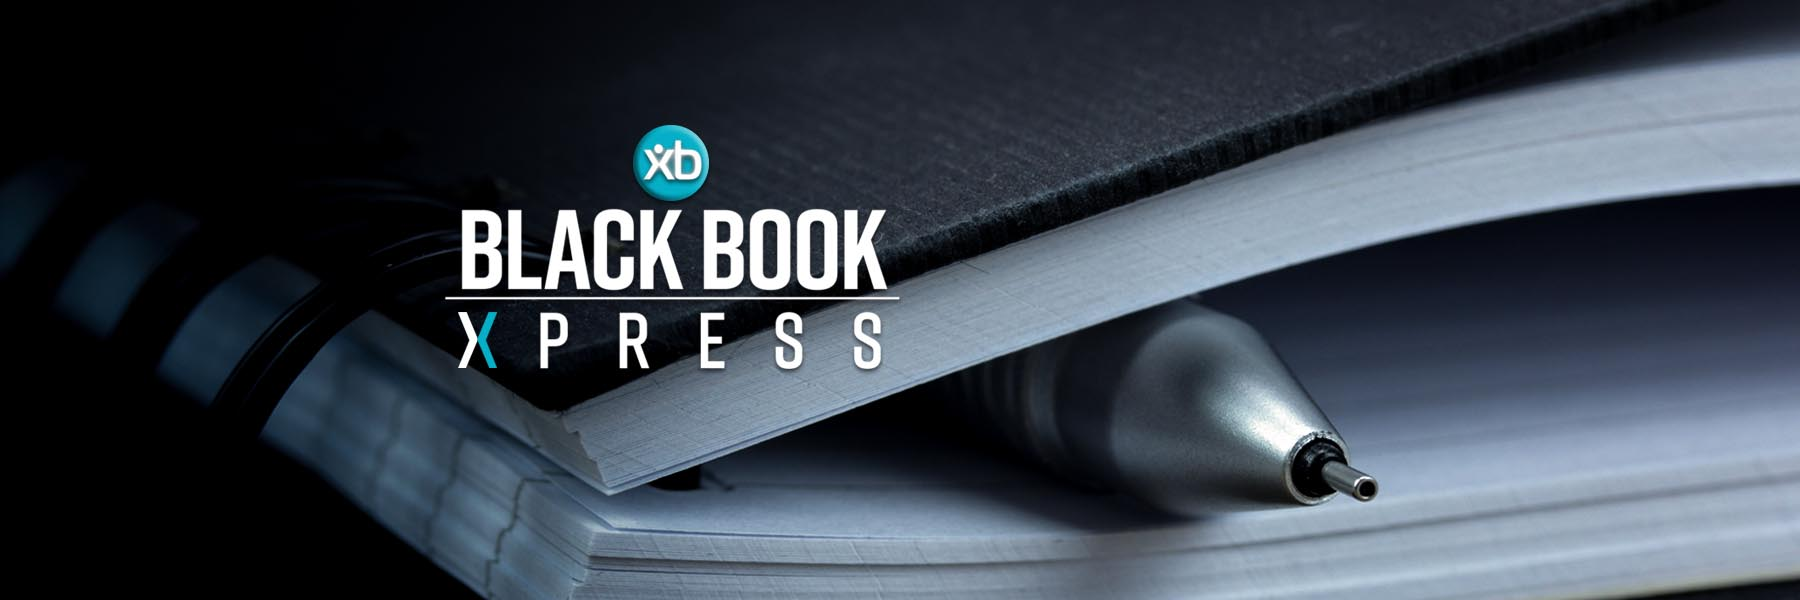 Jeff Siegel's Blog: Black Book Xpress (Updated February 5, 2020)